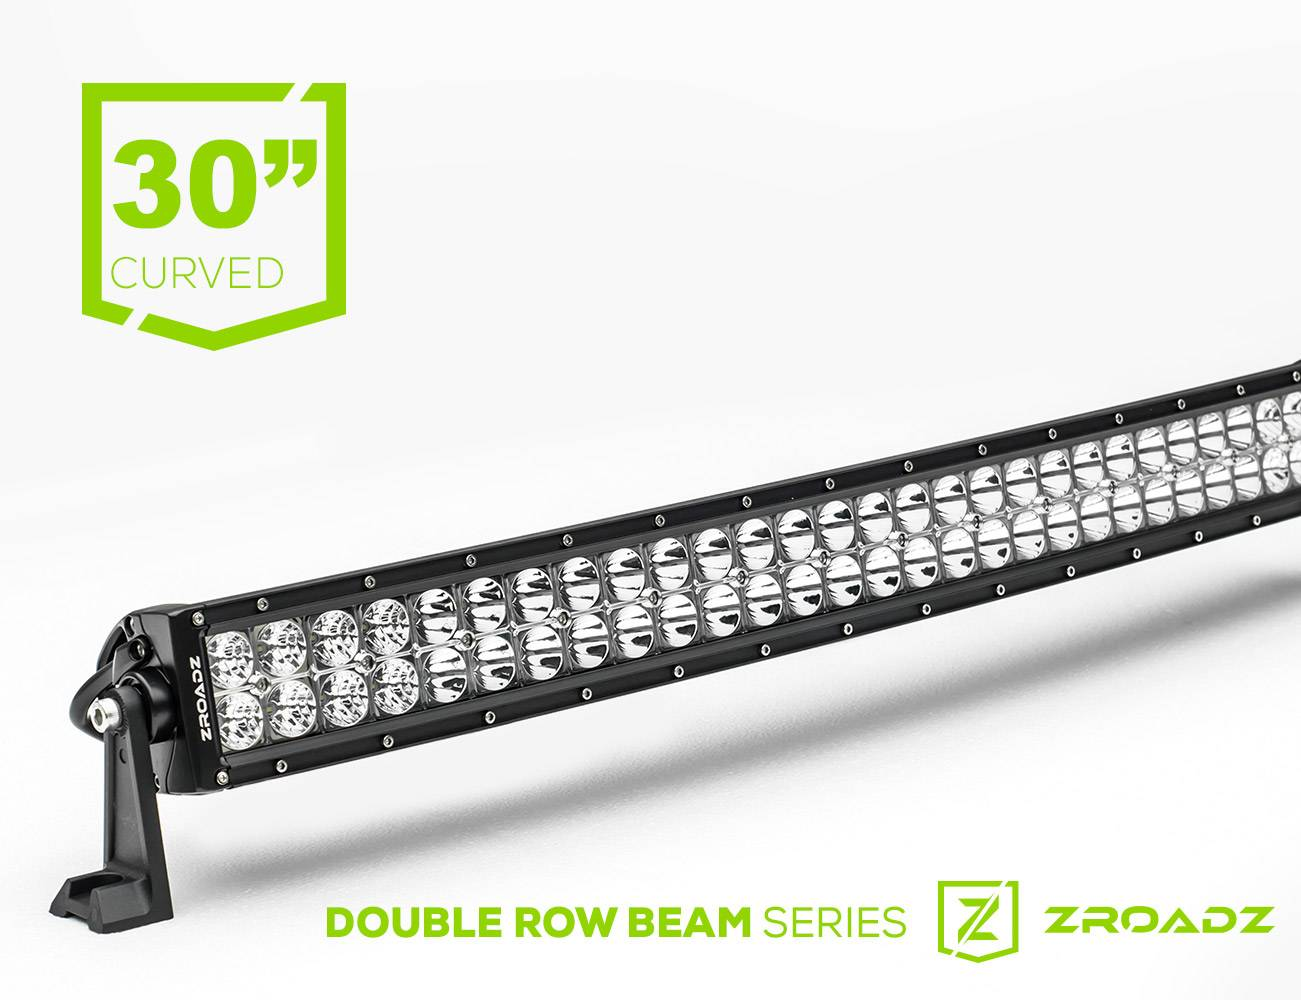 (1) 30 Inch LED Curved Double Row Light Bar - PN #Z30CBC14W180